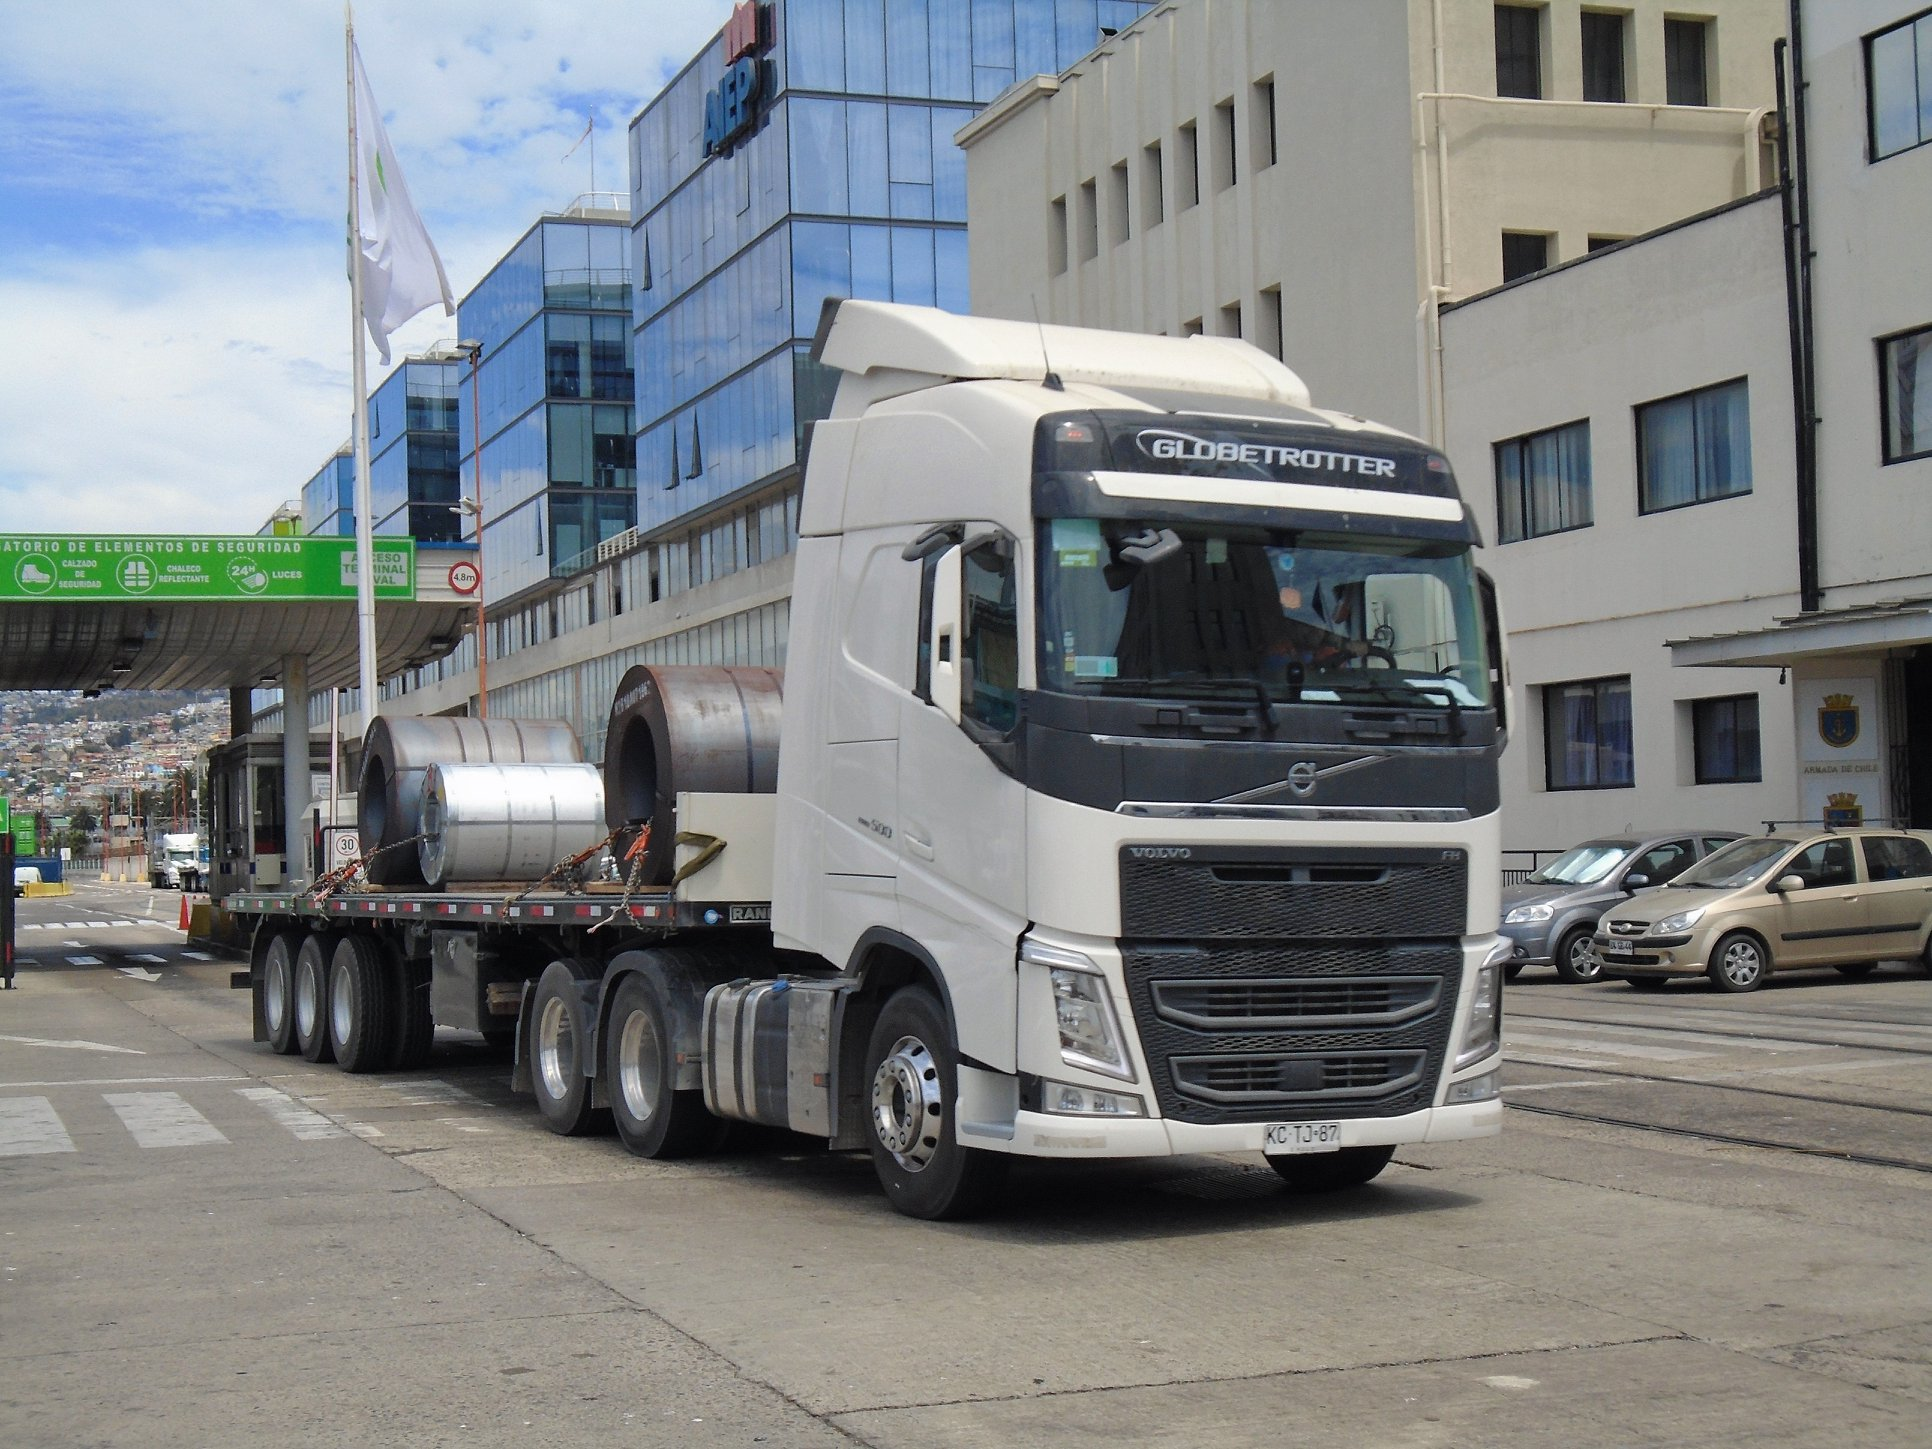 VOLVO-FH-500-i-shift-GLOBETROTTER-6X2-TRACTOR--2018